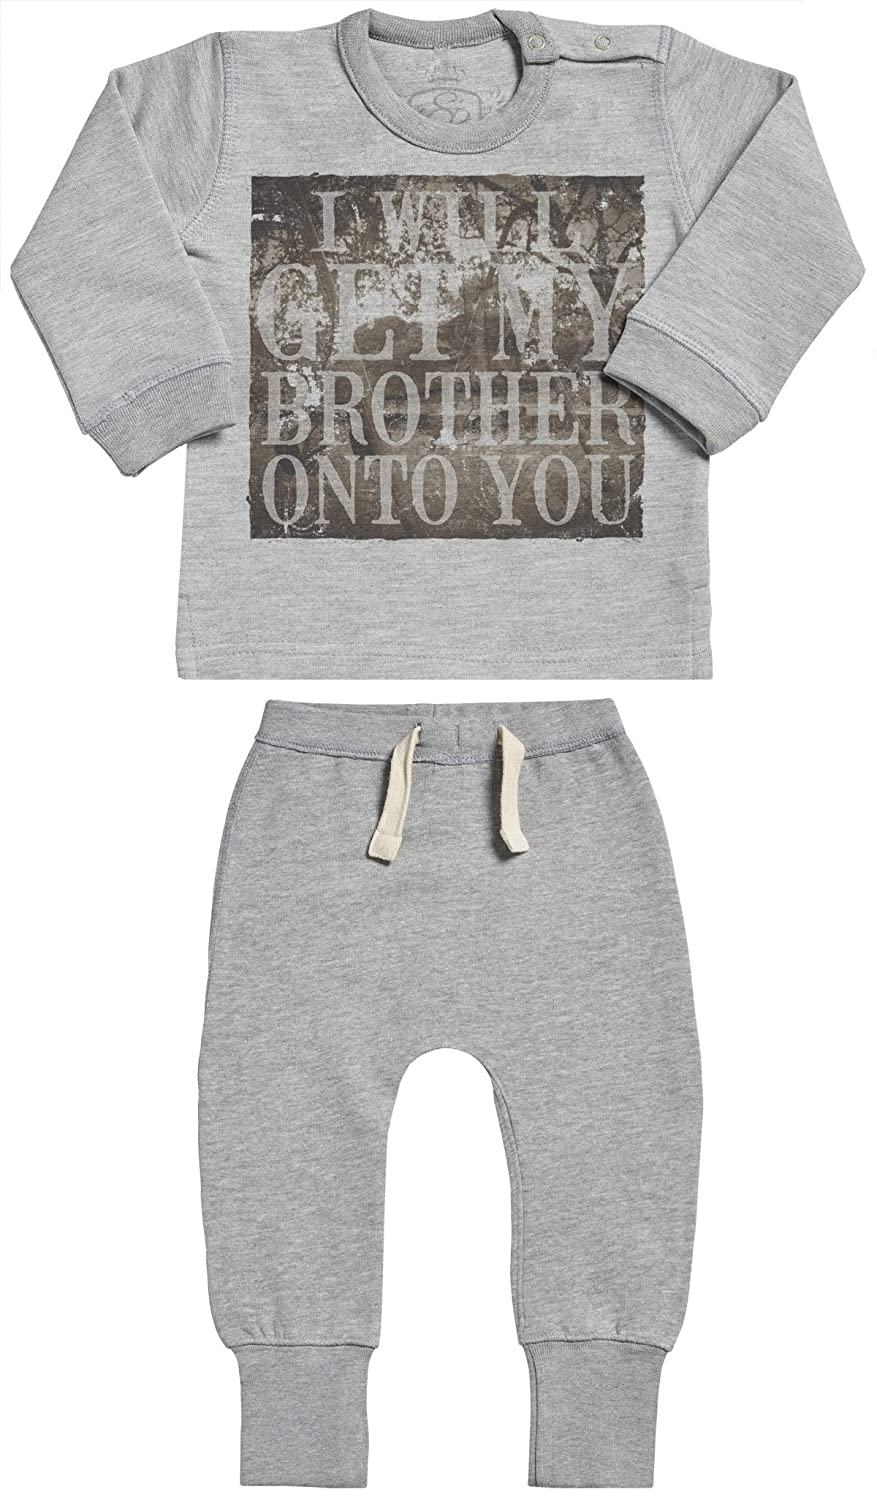 SR Baby Clothing Outfit Baby Gift Set Baby Sweater /& Baby Joggers I Will Get My Brother Onto You Baby Outfit